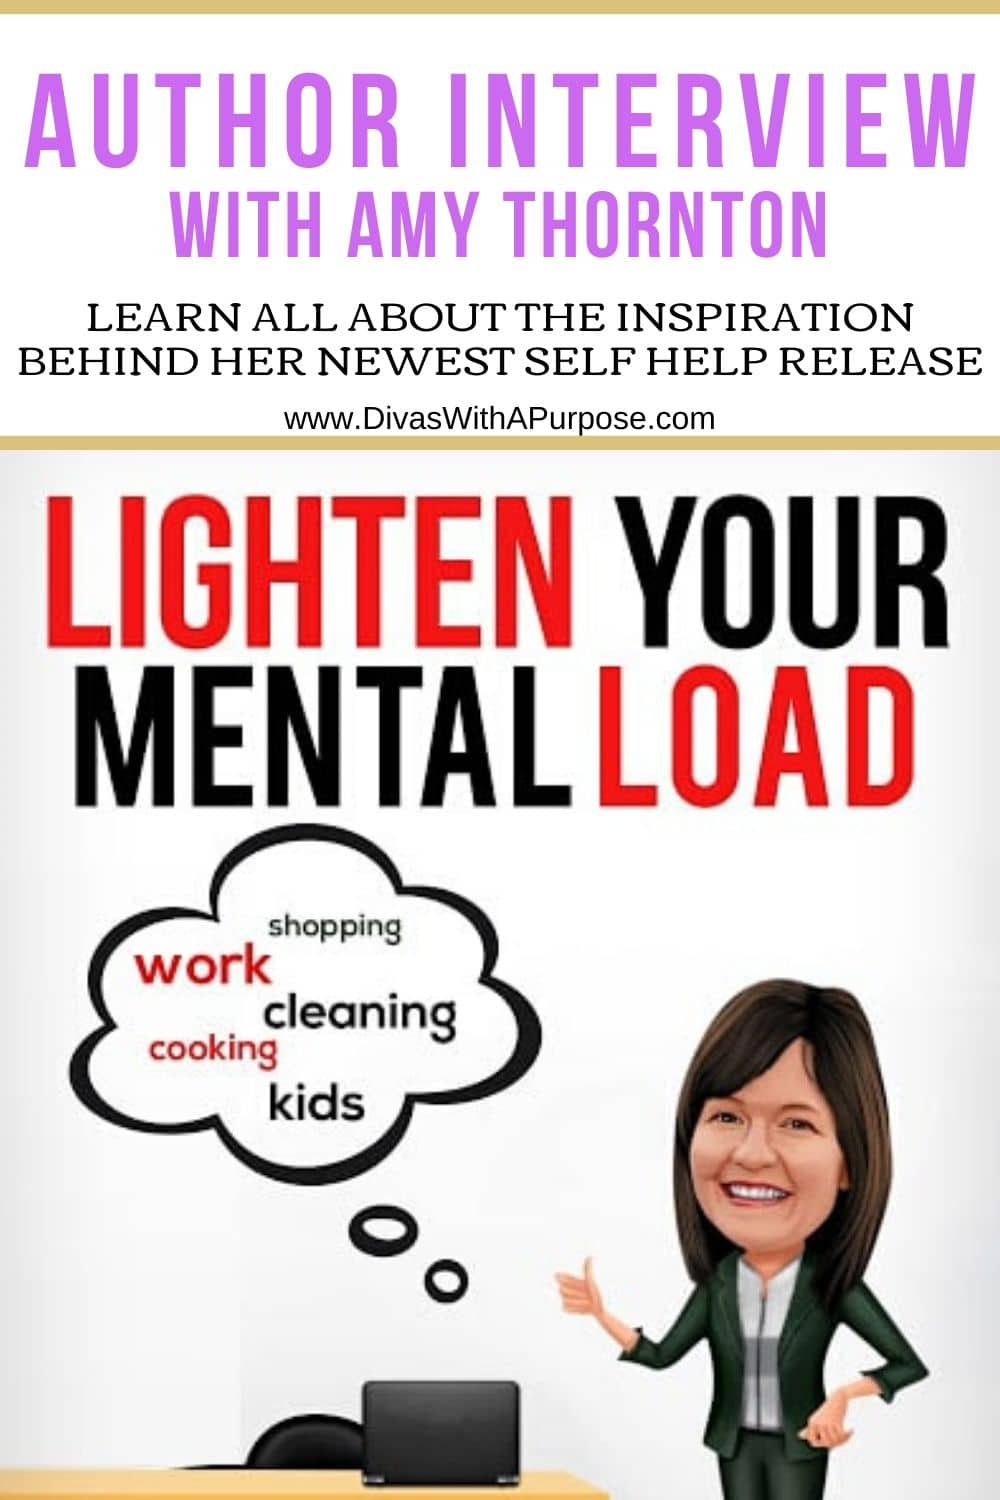 Author Interview with Amy Thornton learn the inspiration behind her newest self help release, Lighten Your Mental Load